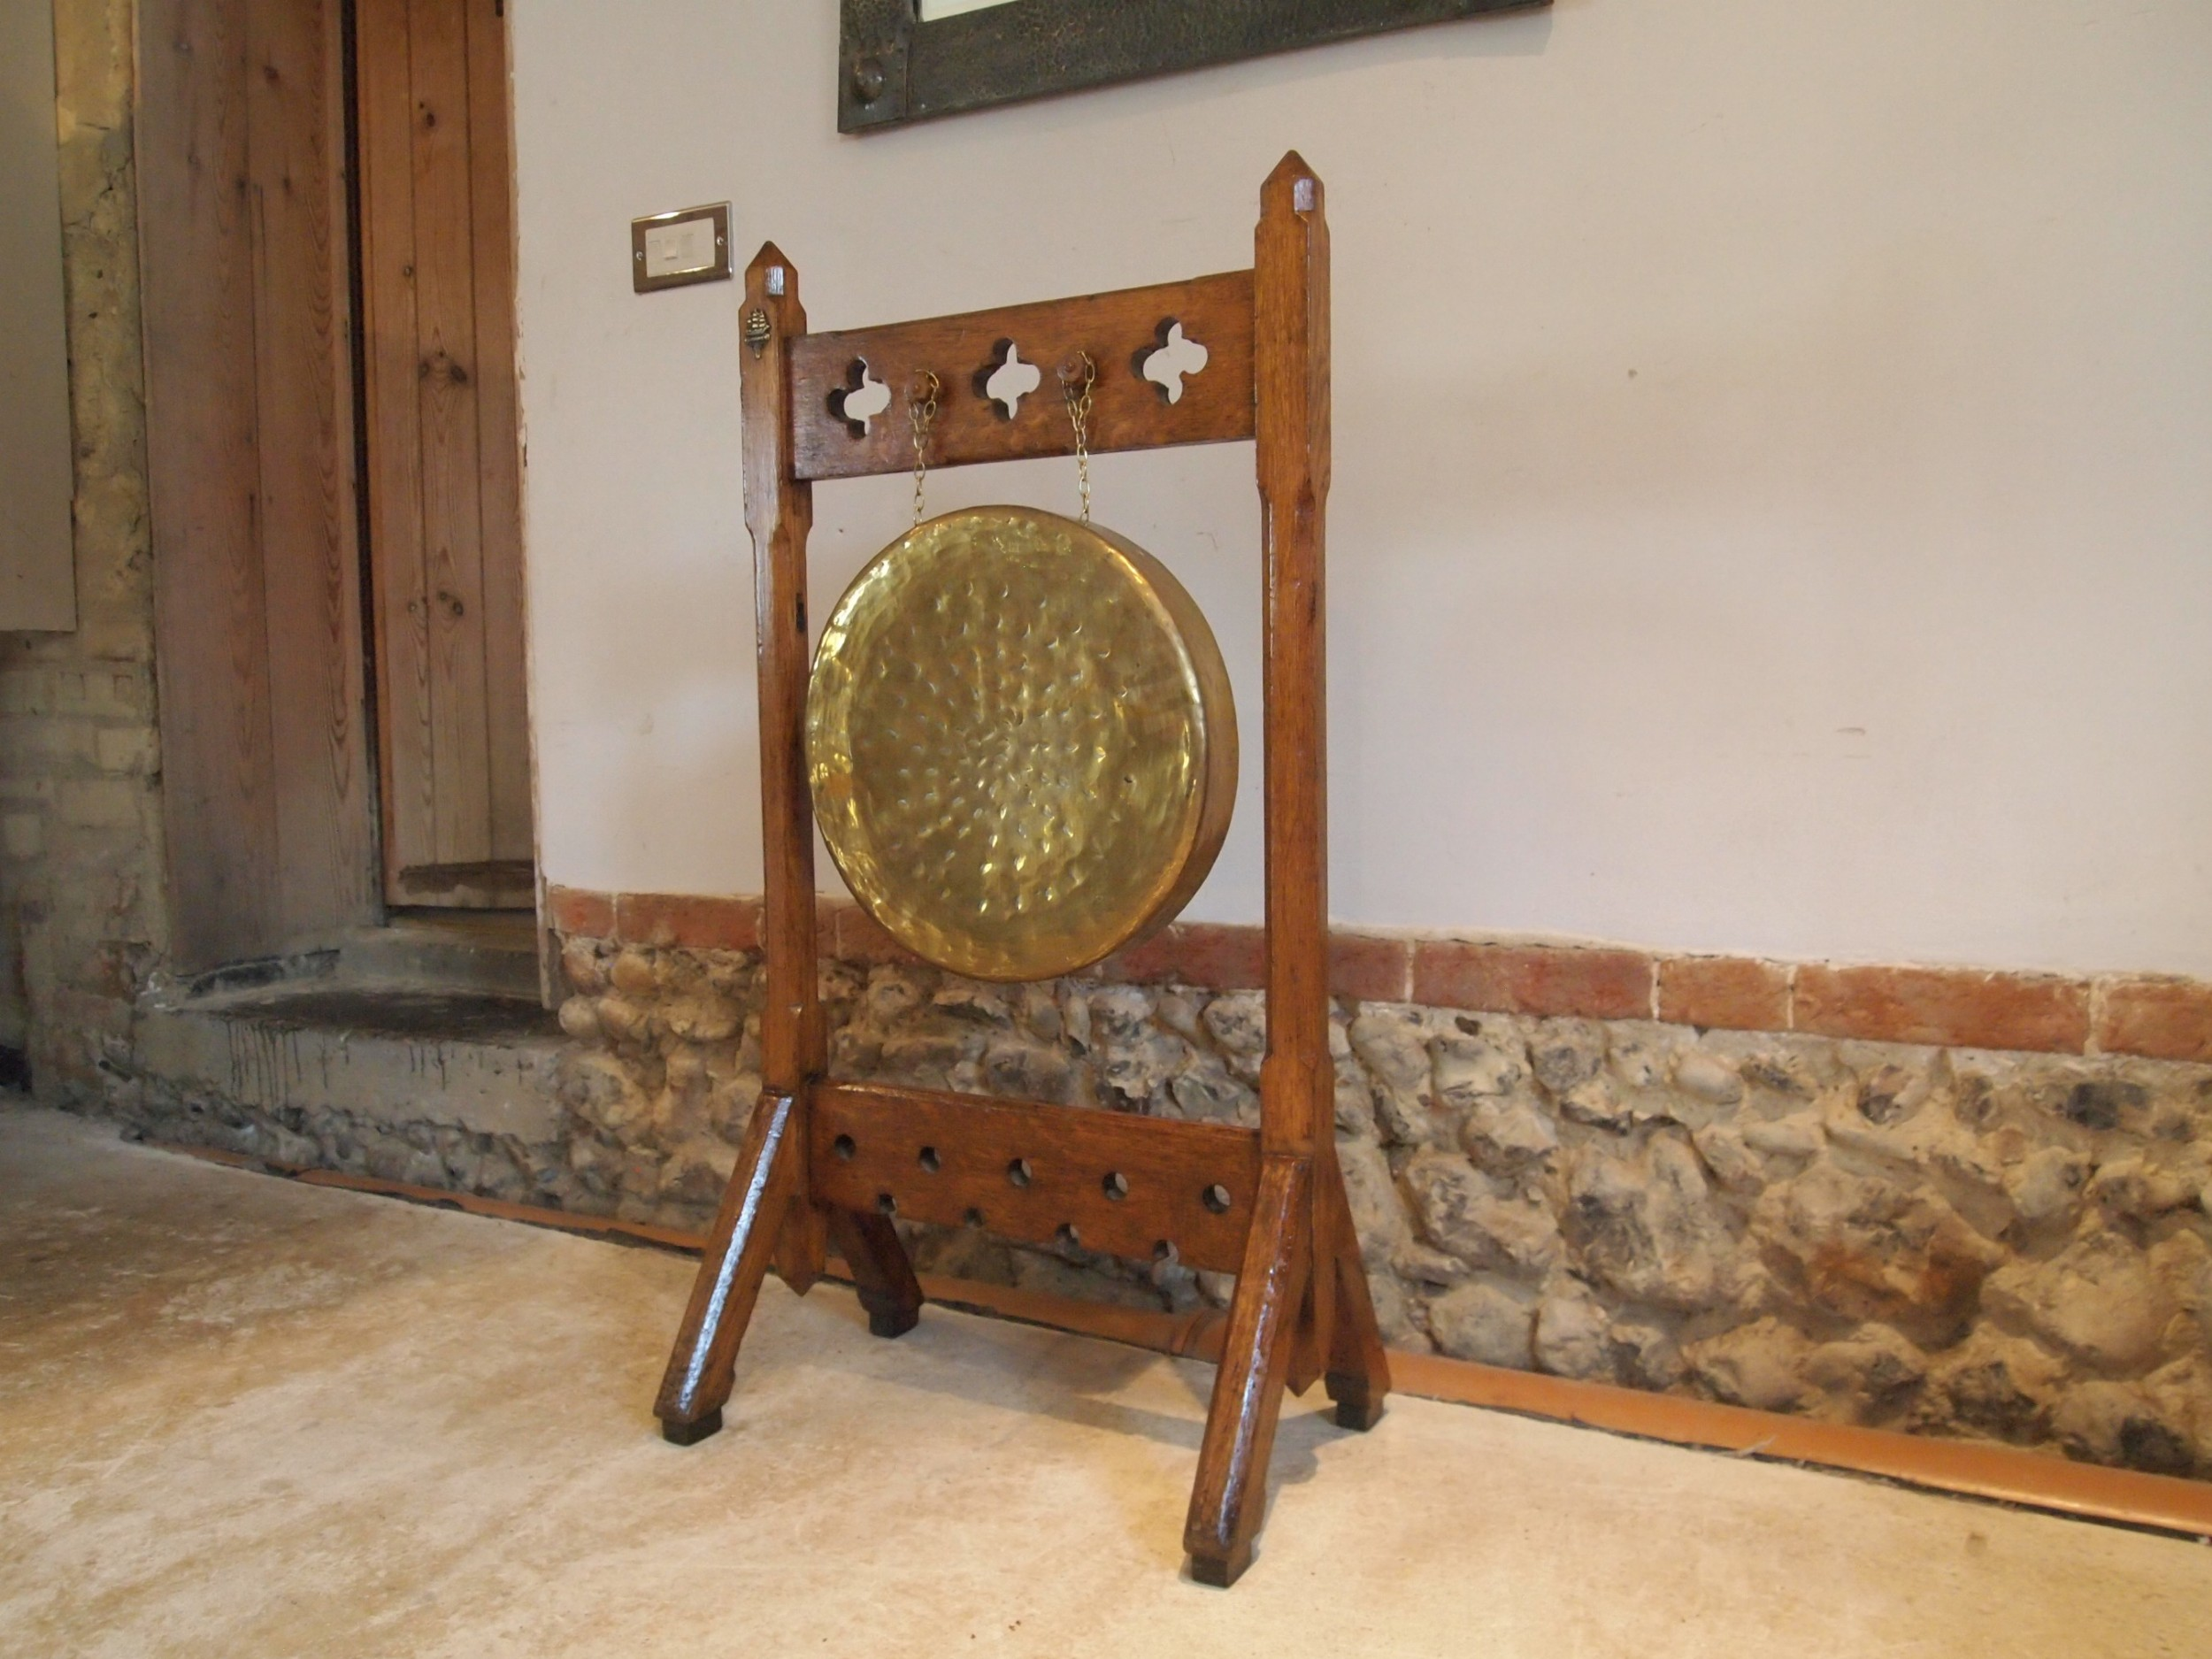 gong dinner pugin style arts and crafts oak c1890